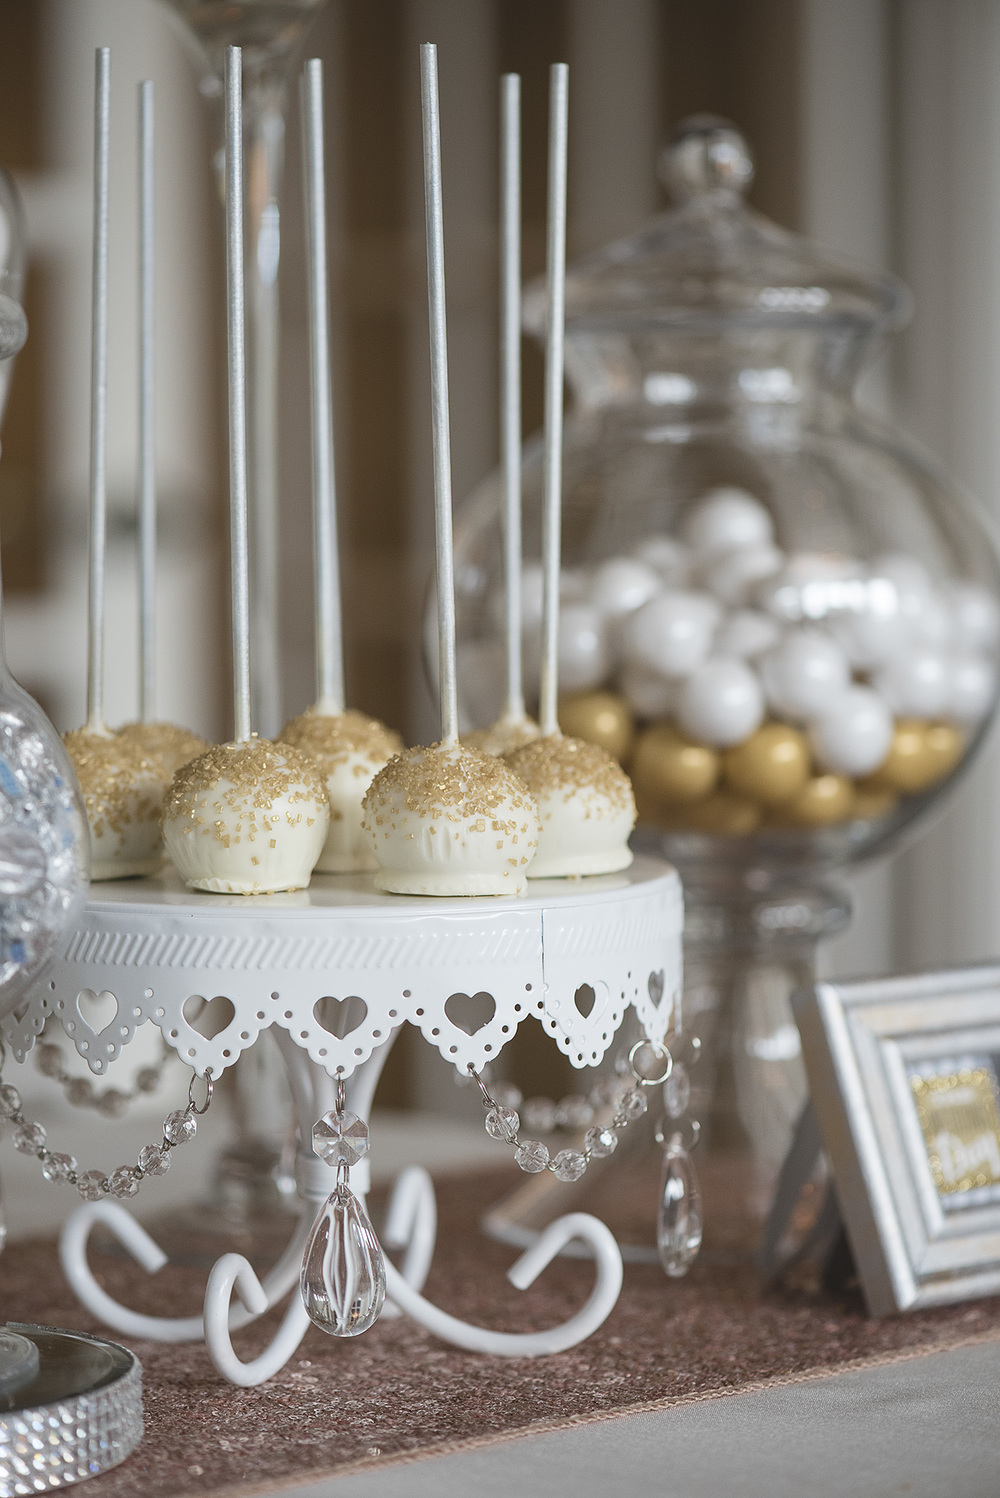 houston-sweetest-wedding-treat-cake-pops-photographer